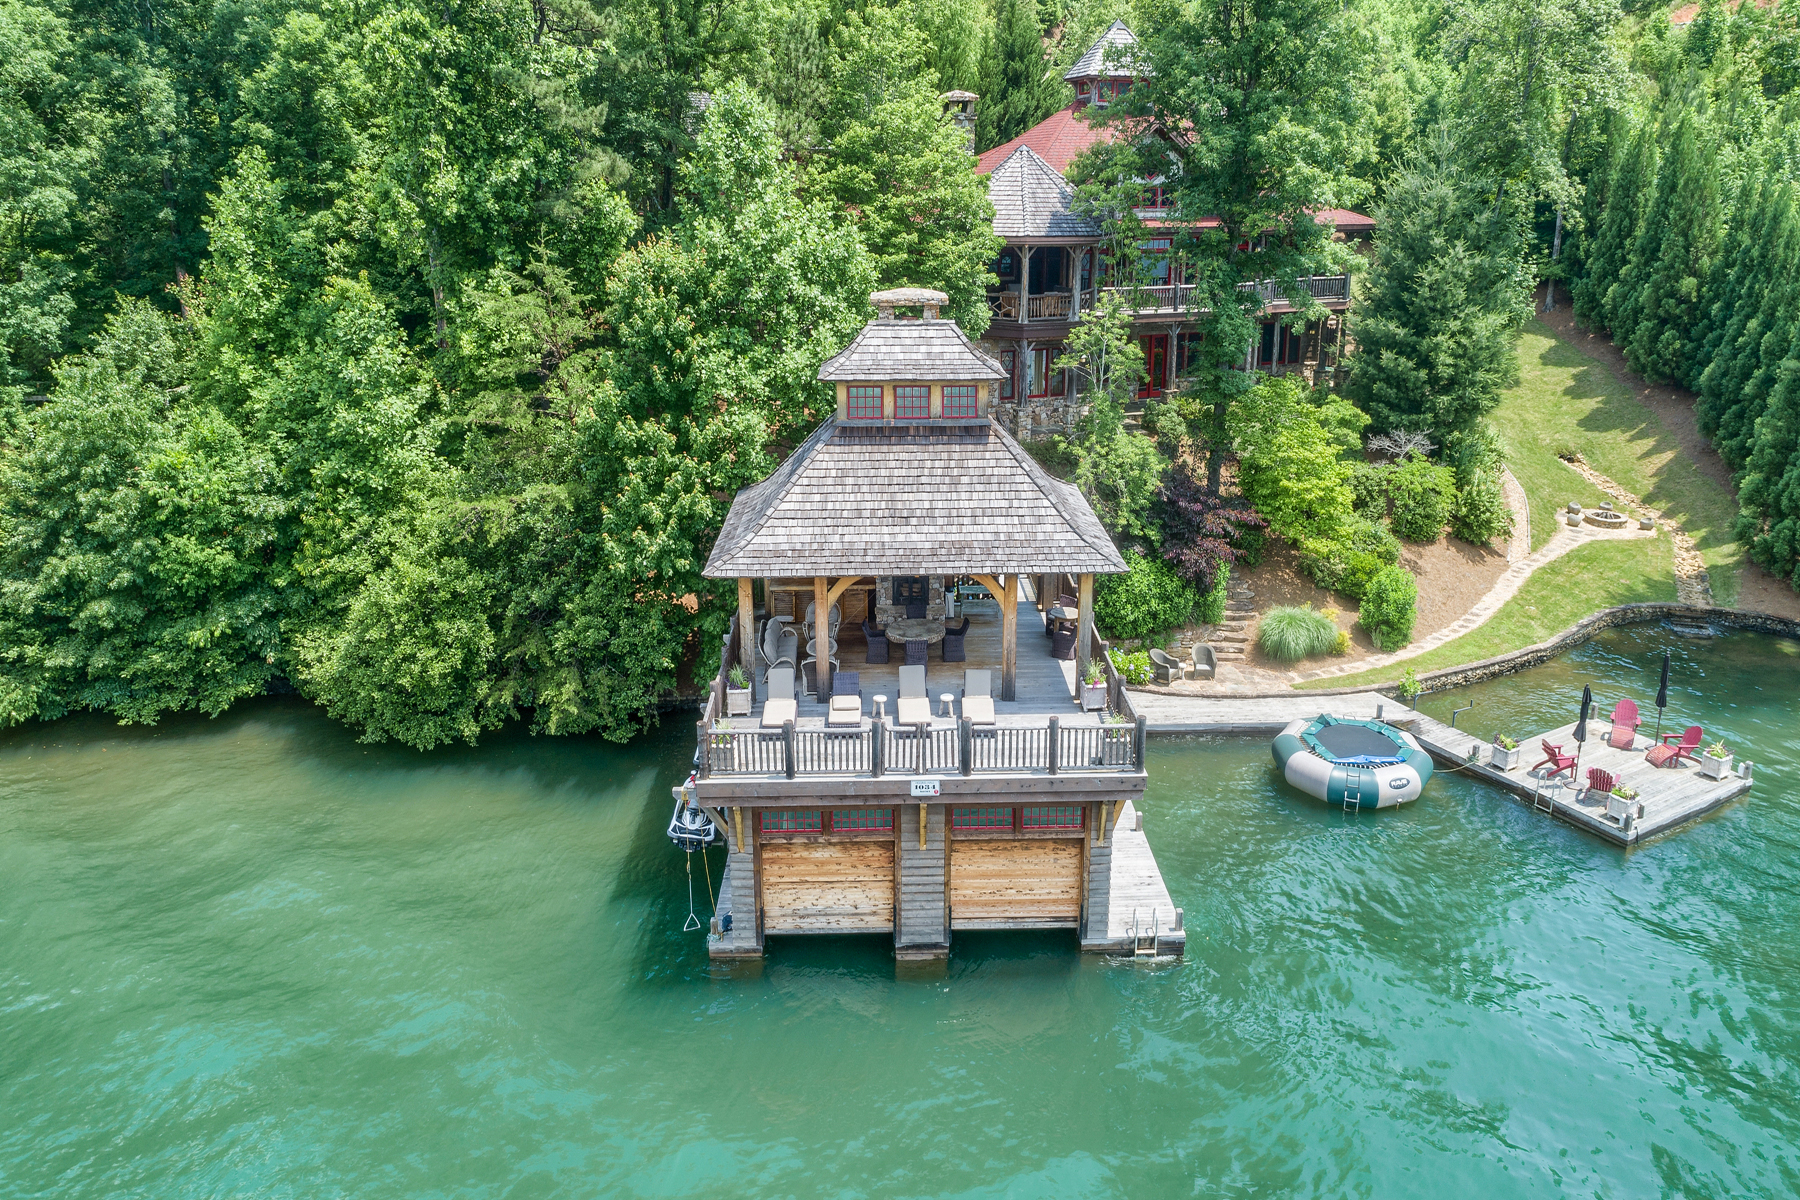 Single Family Home for Sale at Adirondack Camp On Lake Burton 1034 Moccasin Creek Road Clarkesville, Georgia 30523 United States